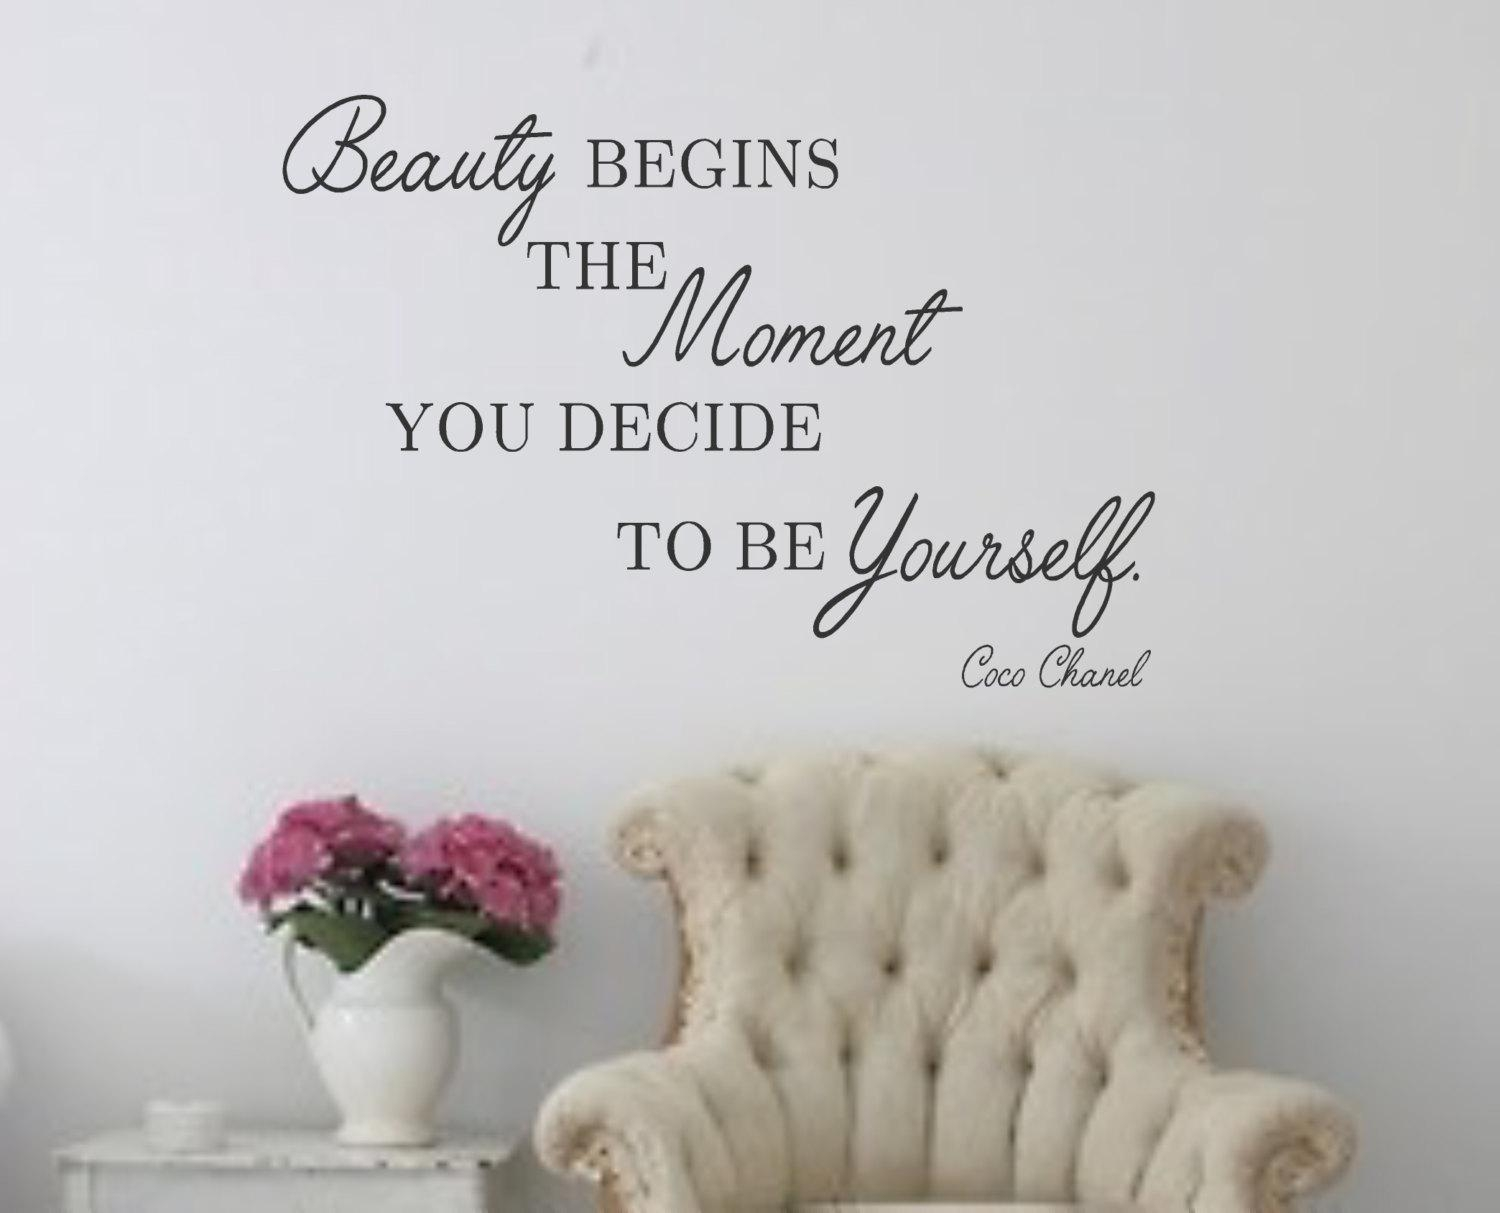 Wall Decal Beauty Begins The Moment You Decide To Be Pertaining To Coco Chanel Wall Decals (View 5 of 20)